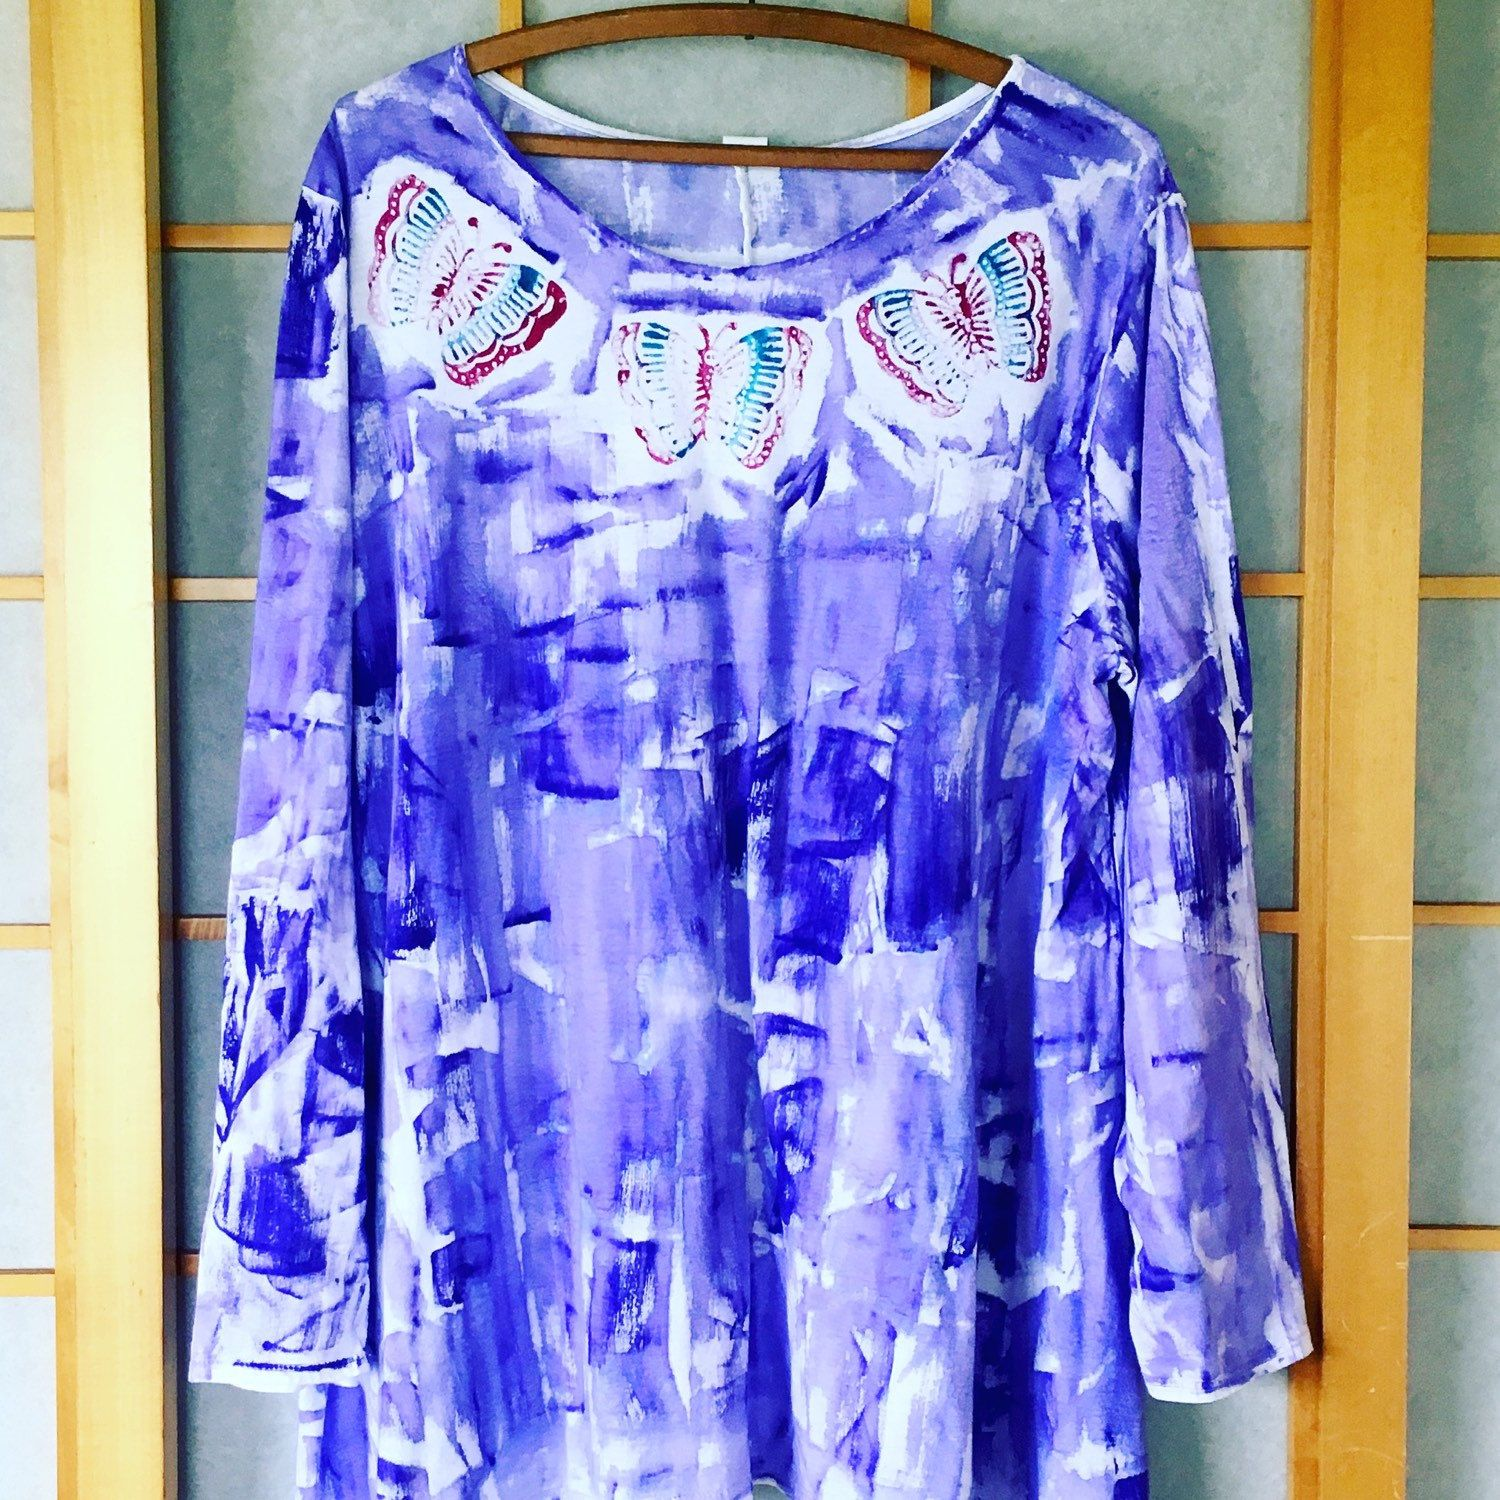 Beautiful light weight cotton tunic top sizes s - 2x.  Great layering/change of season piece.  Hand painted wearable art from Kaua'i Hawaii created with Aloha.